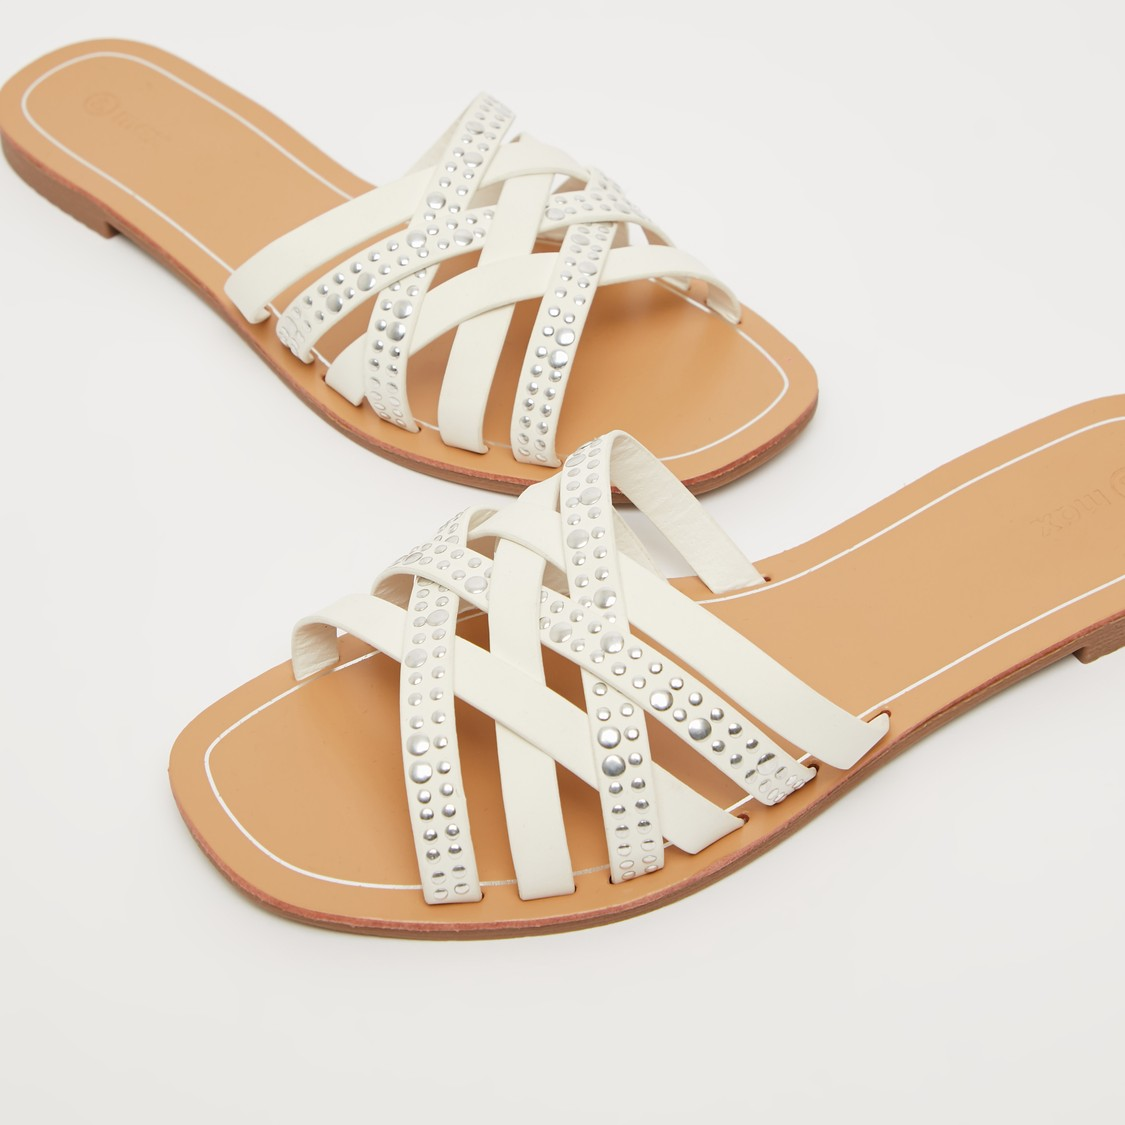 Embellished Sandals with Cross Straps